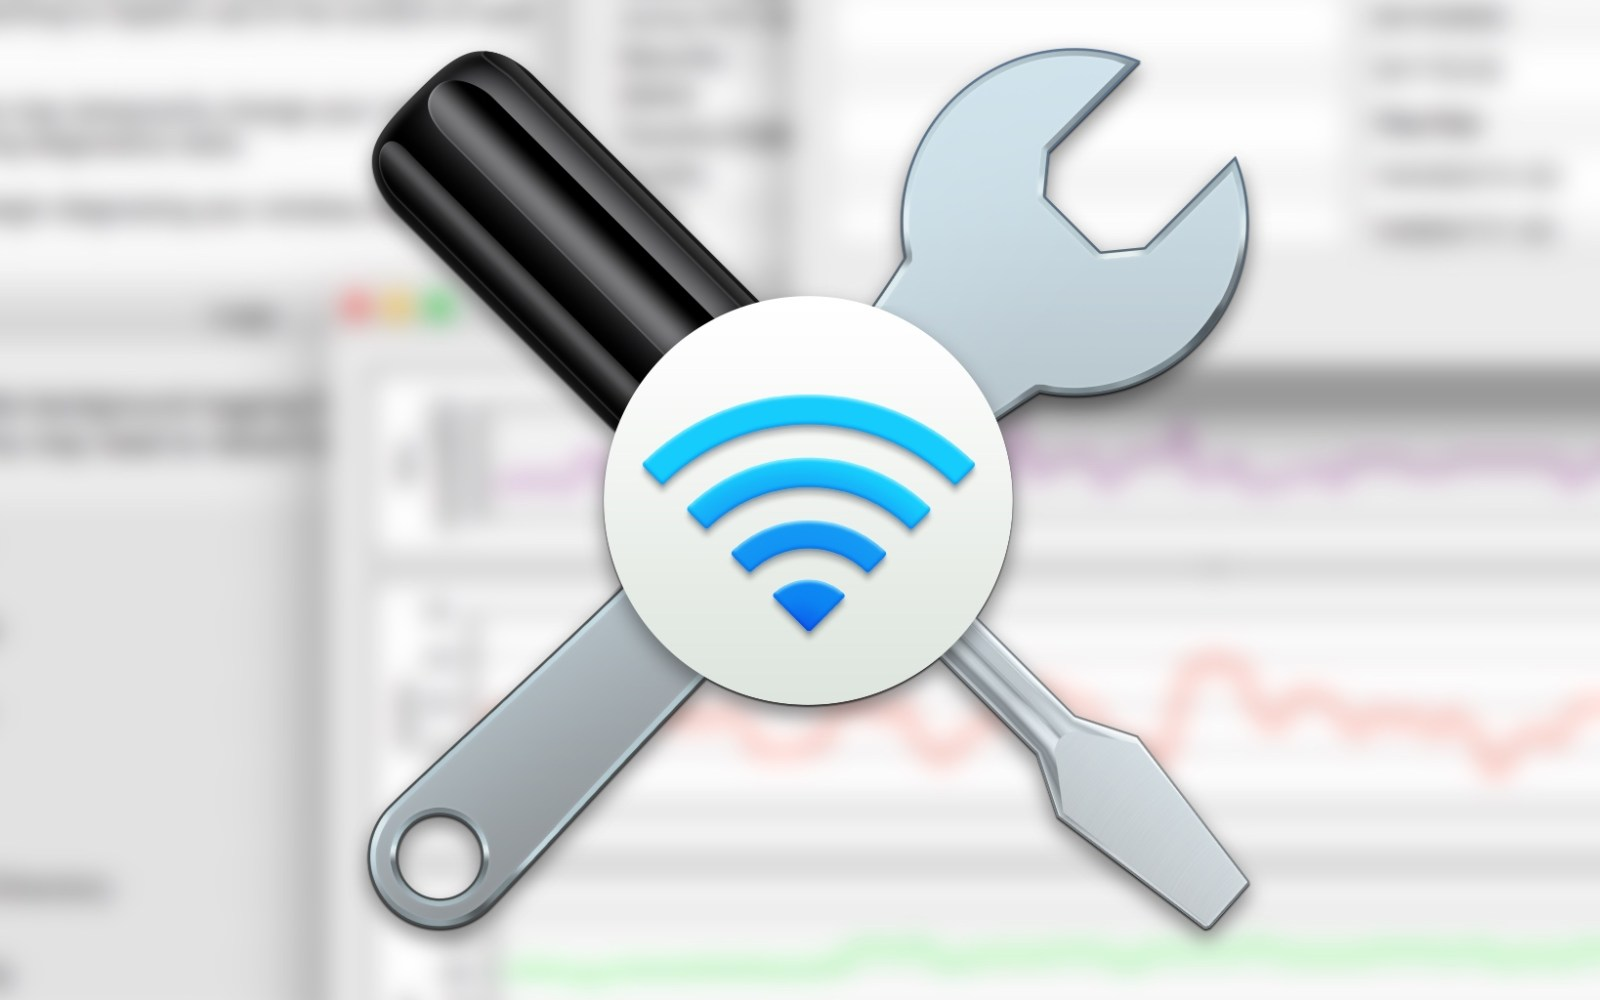 How-To: Understand the Wireless Diagnostics app on your Mac to analyze and improve your Wi-Fi network